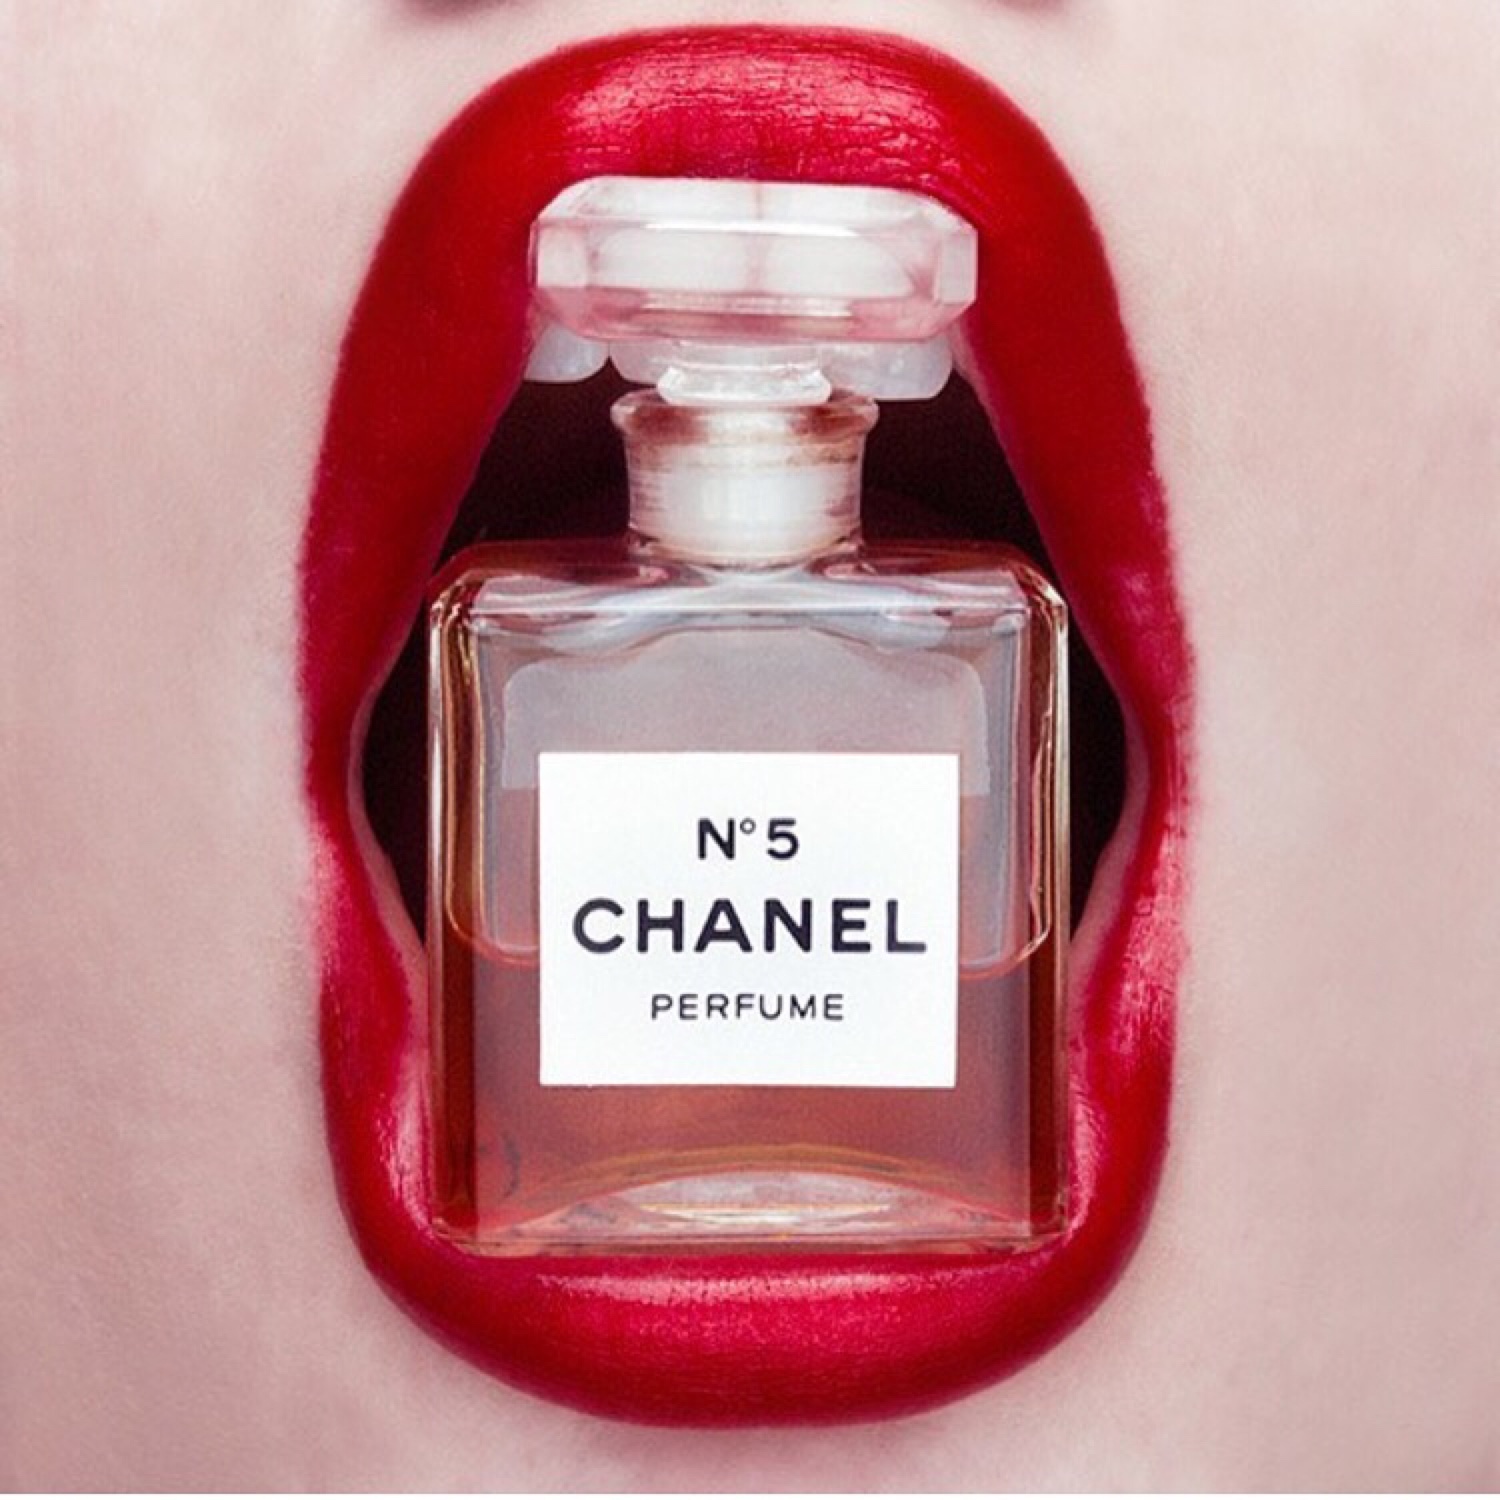 Chanel Perfume by Tyler Shields